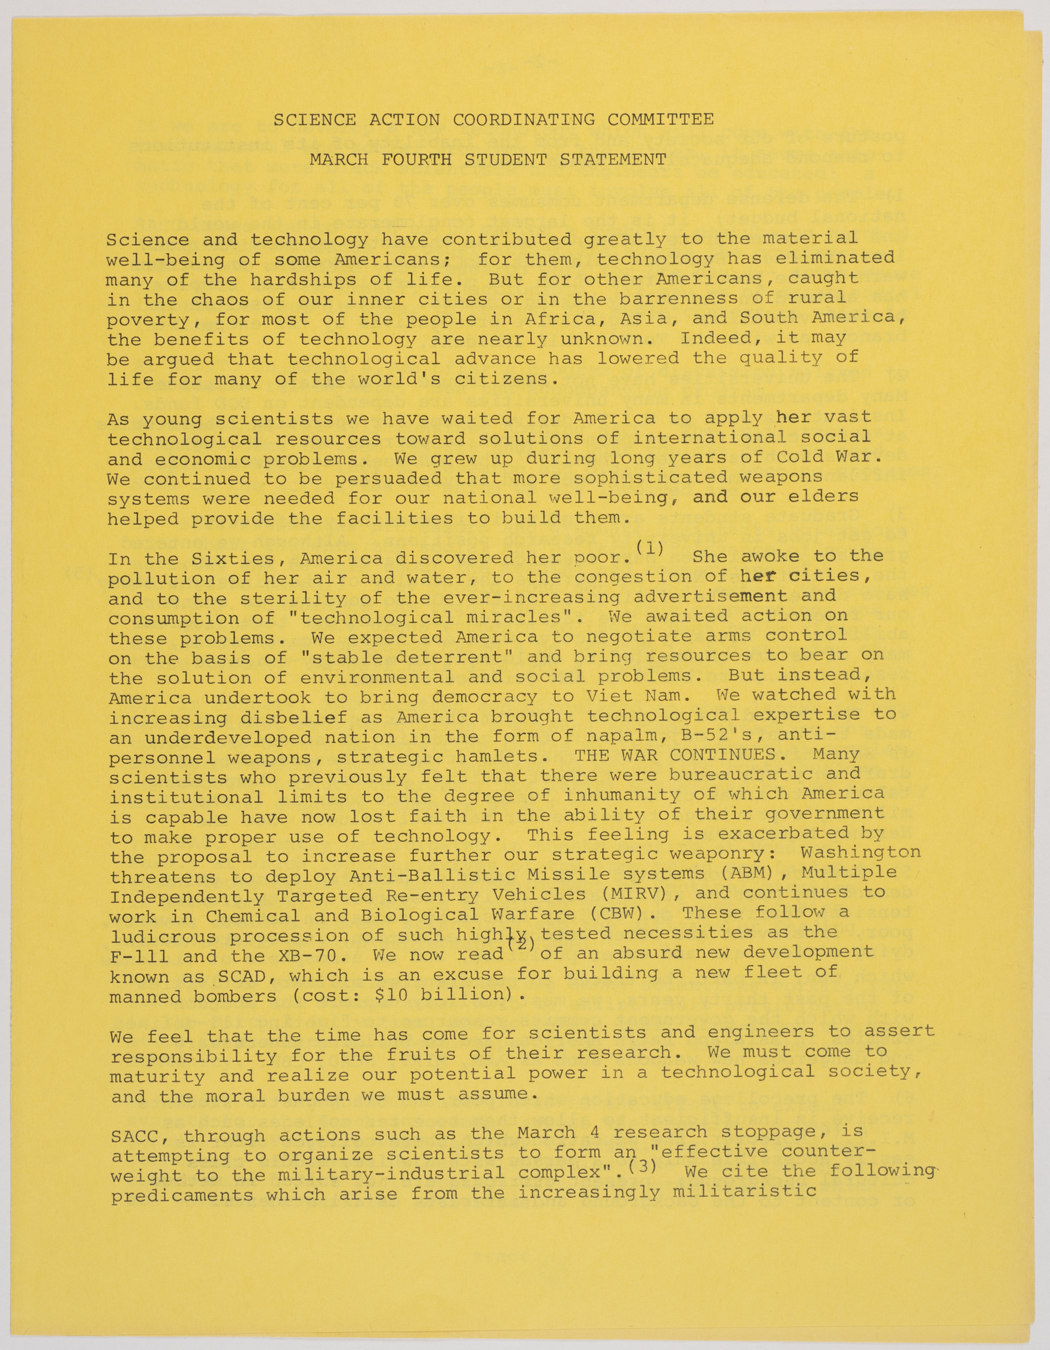 Social Action Coordinating Committee, March 4th student statement, 1969, AC-0349, Box 1.